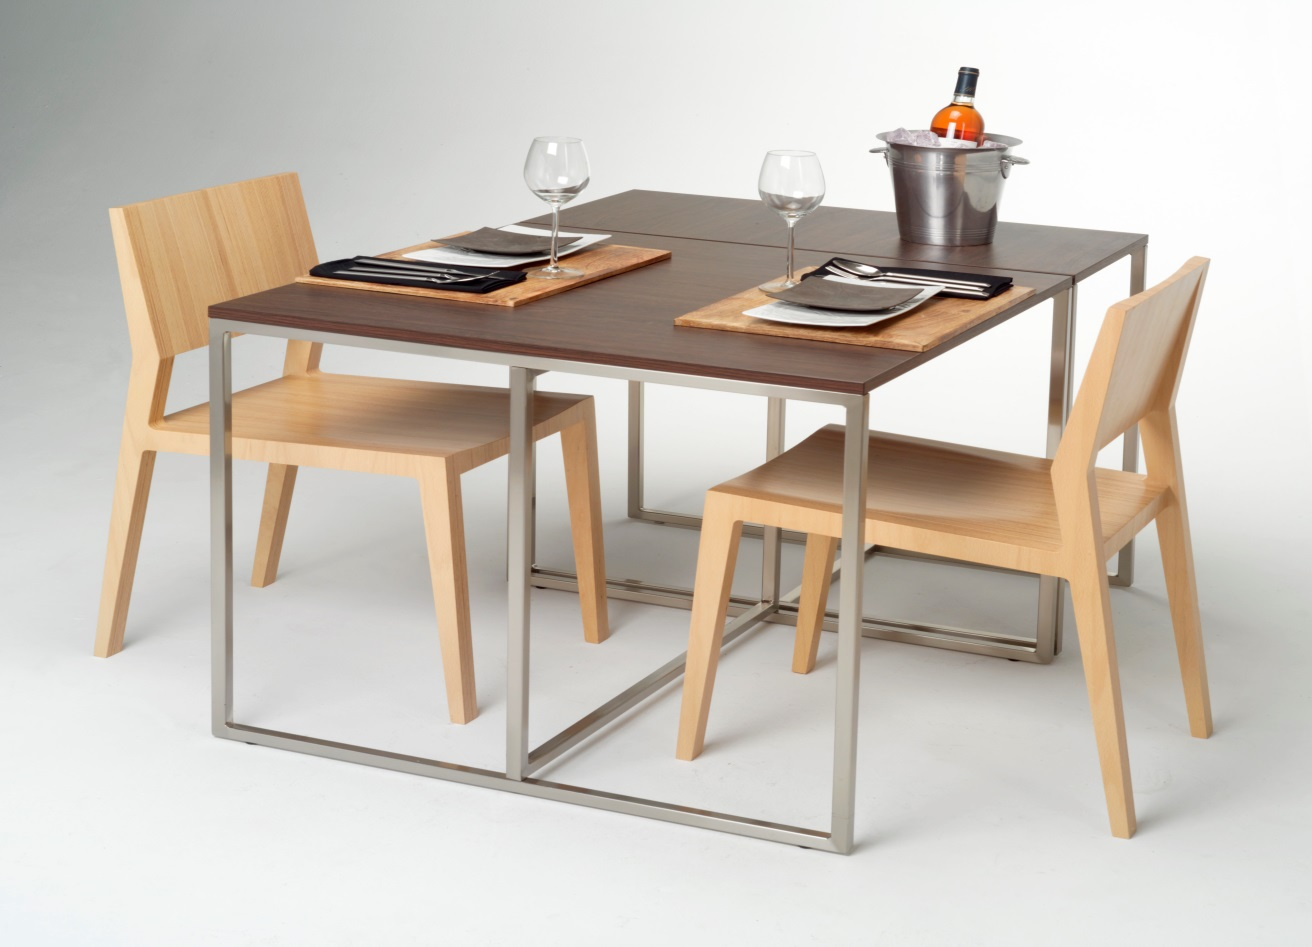 Modern furniture from providers like IKEA offers a way to decorate your home on a small budget